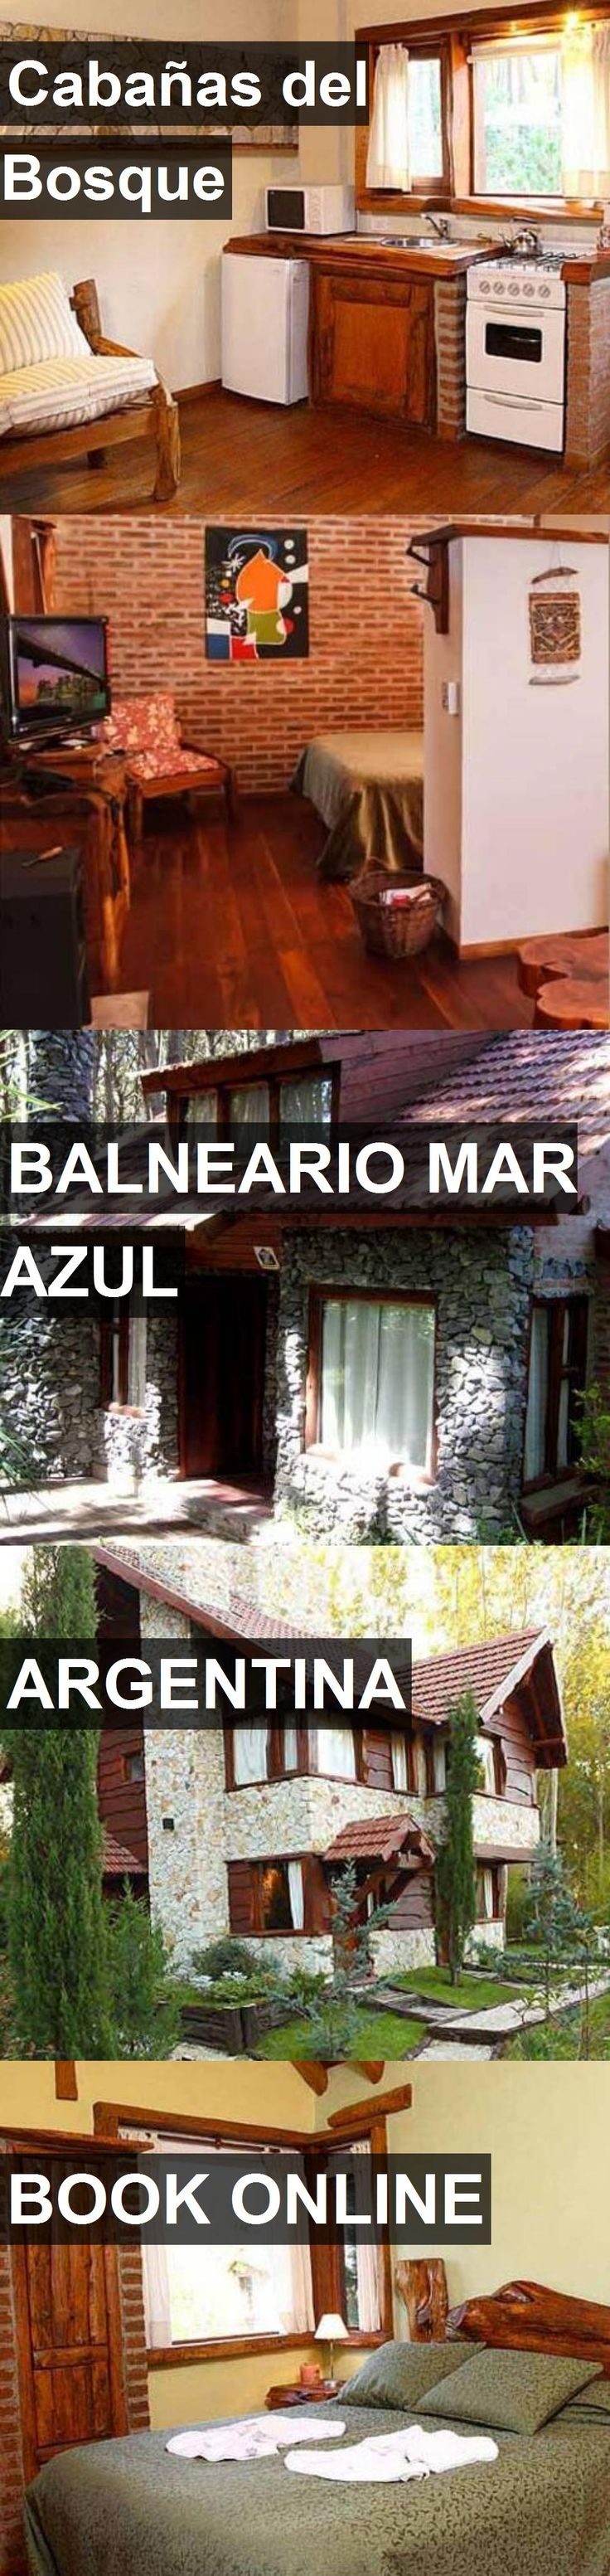 Hotel Cabañas del Bosque in Balneario Mar Azul, Argentina. For more information, photos, reviews and best prices please follow the link. #Argentina #BalnearioMarAzul #CabañasdelBosque #hotel #travel #vacation